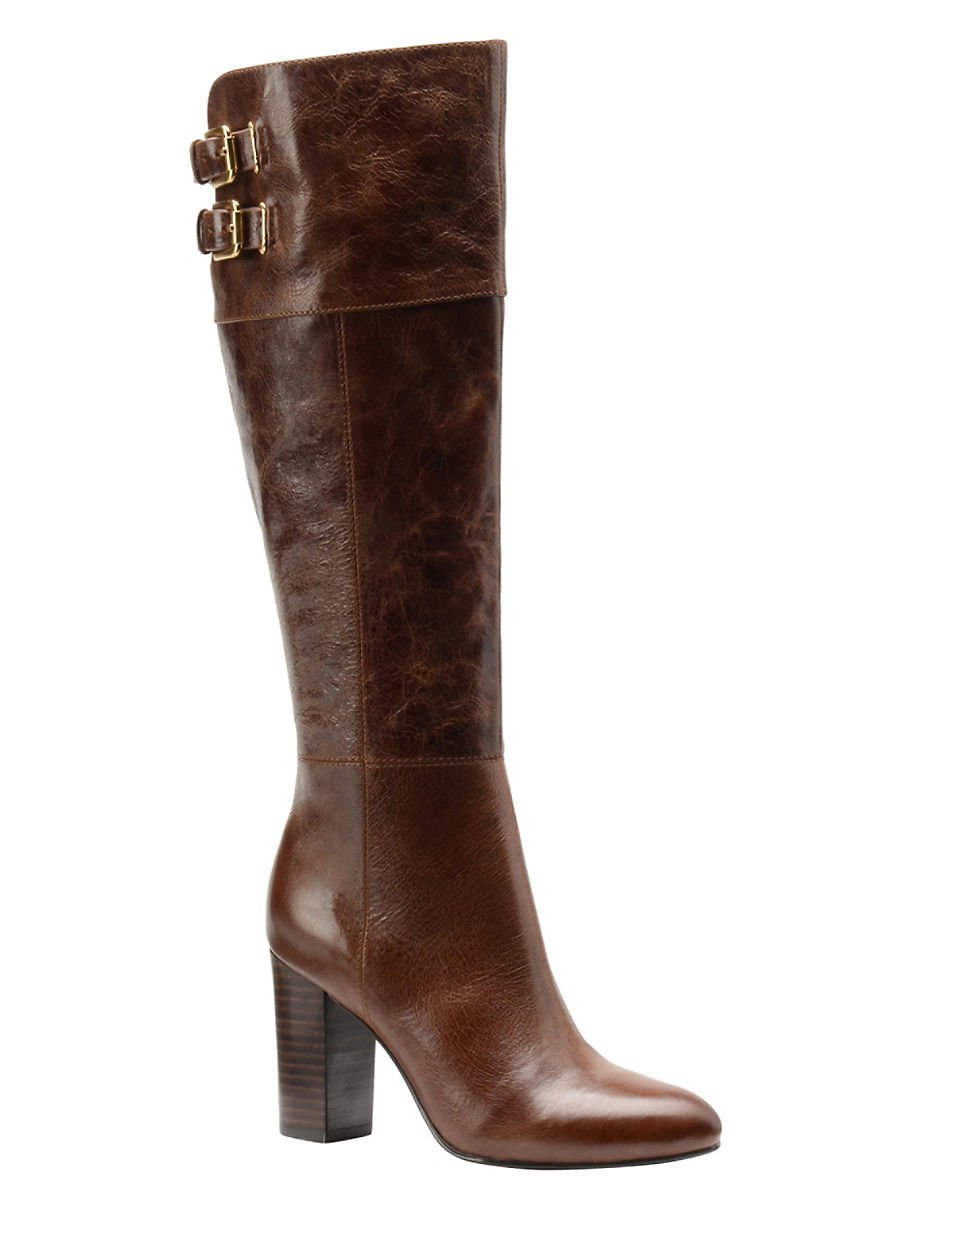 Knee High Leather Boots. Showing 48 of results that match your query. Search Product Result. Product - INC International Concepts Fedee Women Round Toe Leather Brown Knee High Boot. Reduced Price. Product Image. Price $ 99 - $ Product Title. INC International Concepts Fedee Women Round Toe Leather Brown Knee High Boot.